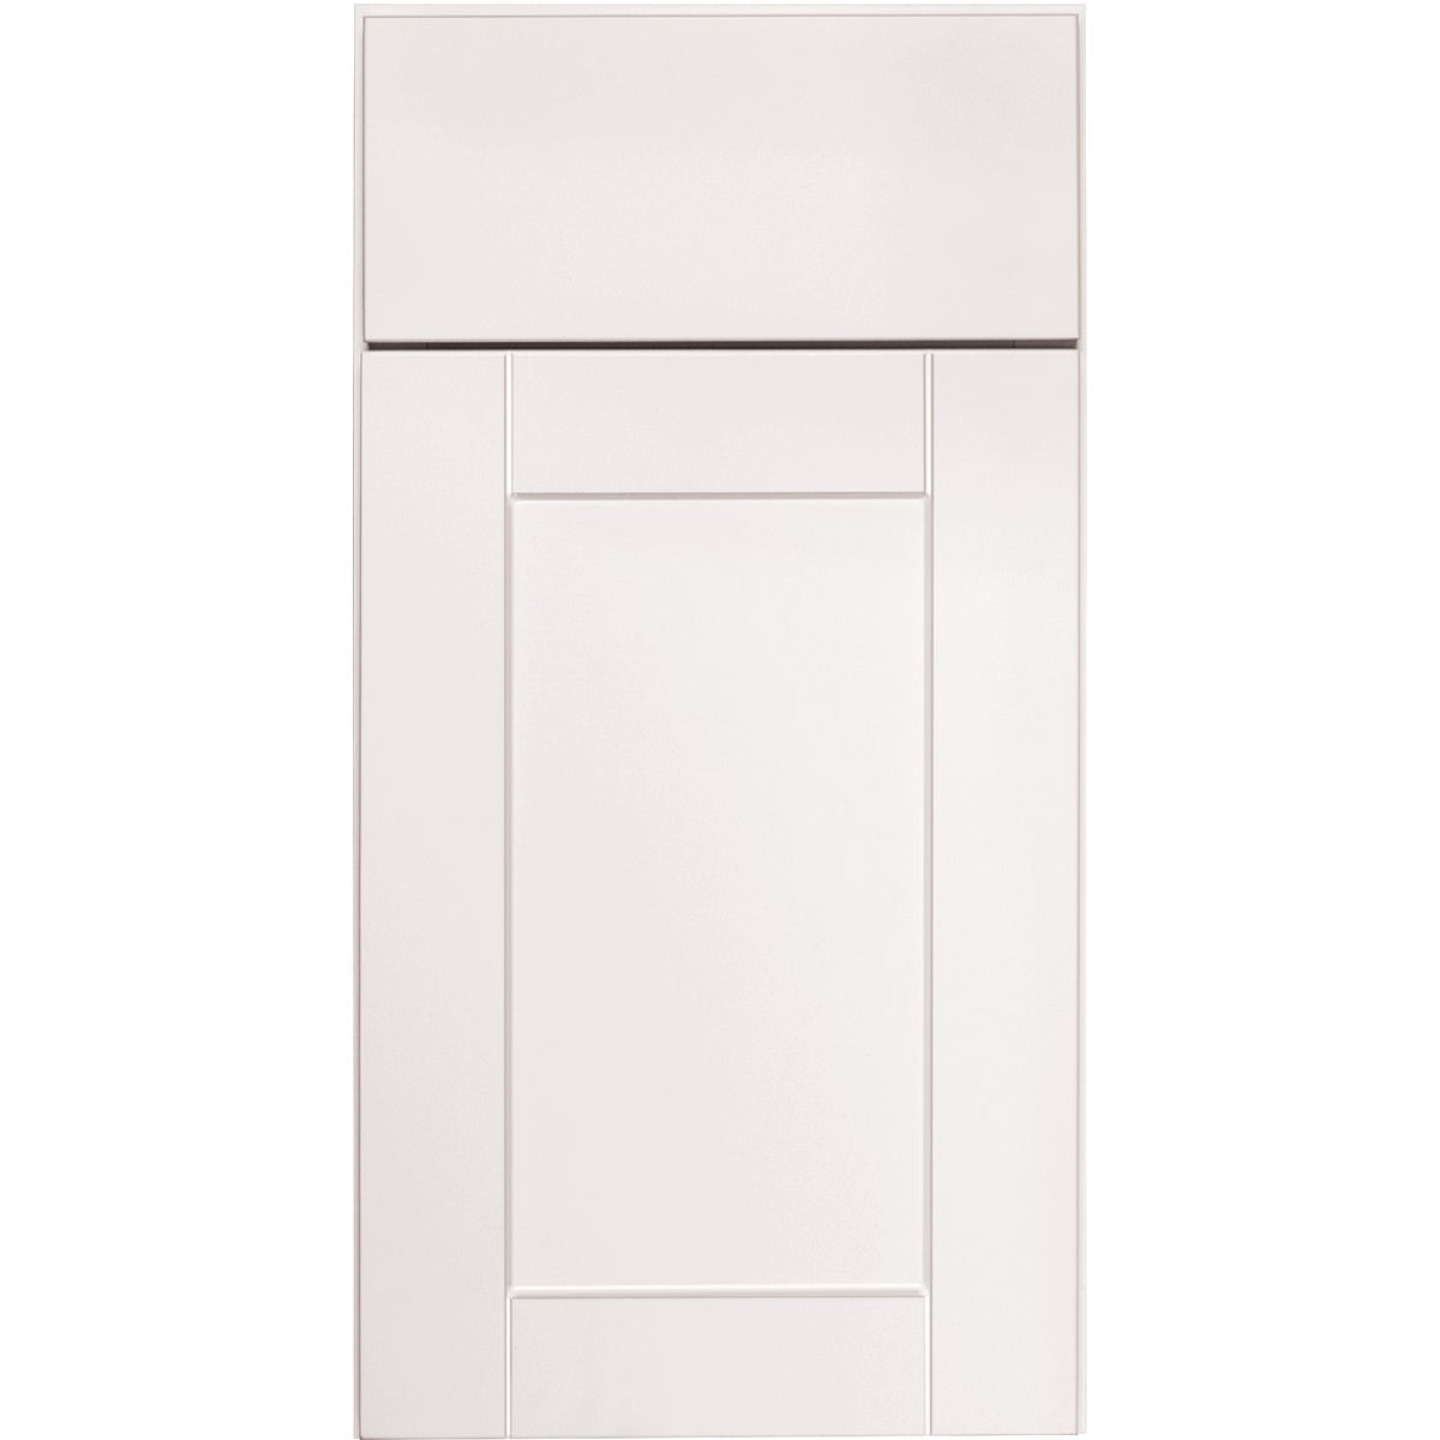 Continental Cabinets Andover Shaker 15 In. W x 34 In. H x 24 In. D White Thermofoil Base Kitchen Cabinet Image 3